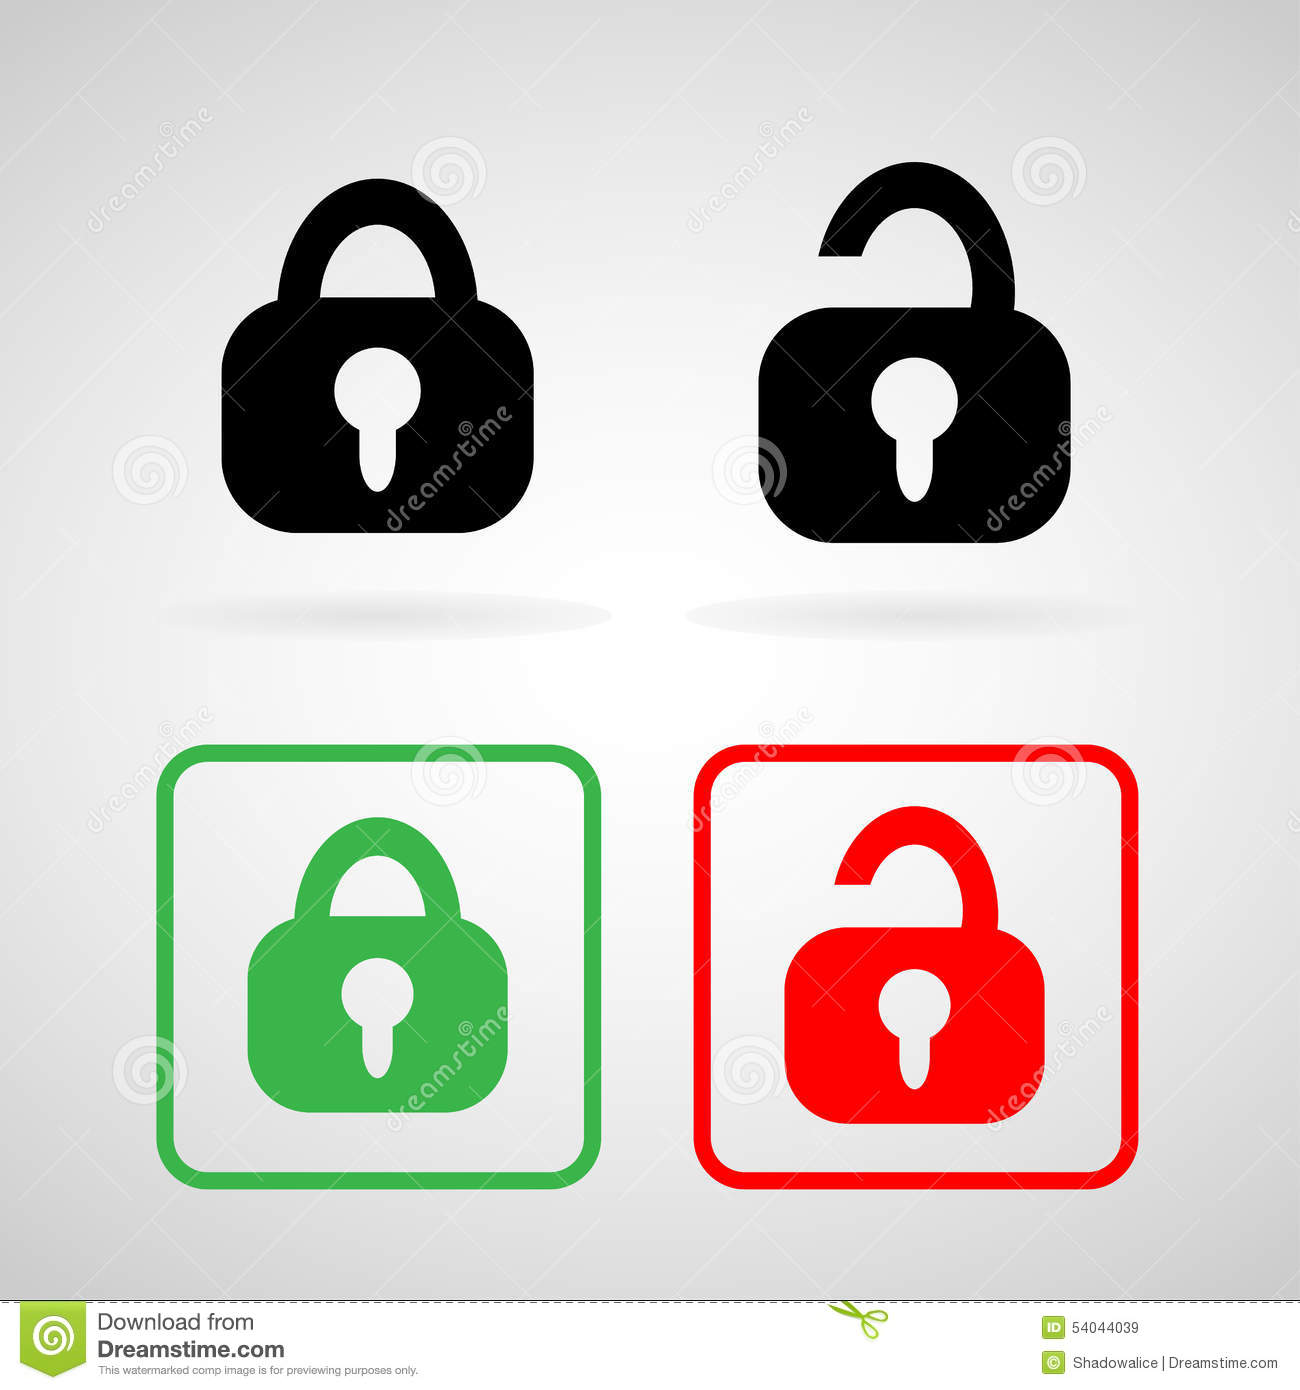 Lock And Unlock Icons Set Great For Any Use. Vector EPS10. Stock.